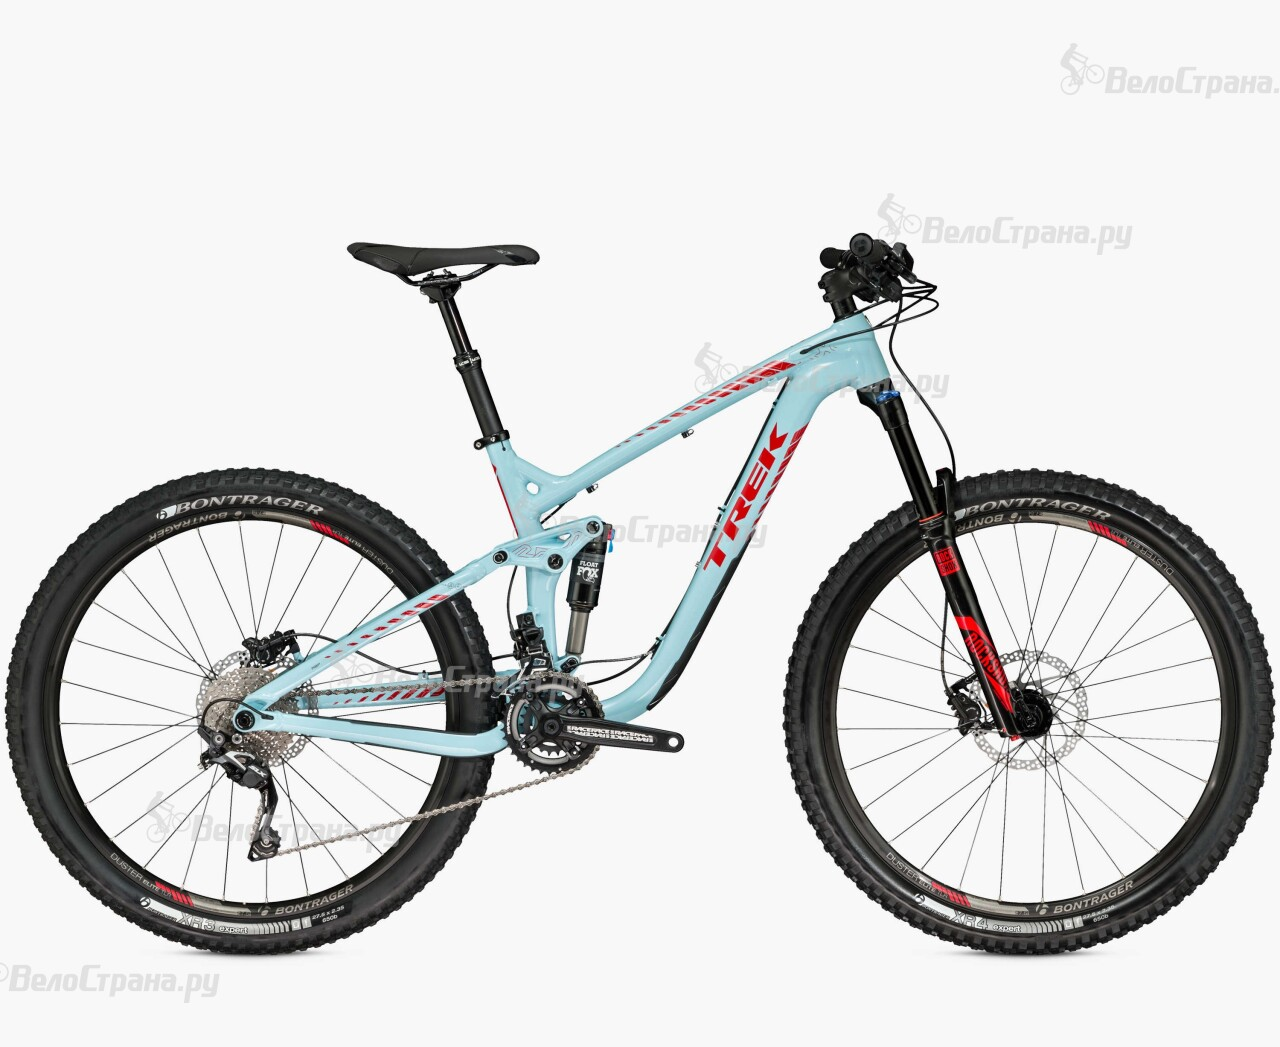 Велосипед Trek Remedy 7 27.5 (2016) велосипед trek remedy 7 27 5 2016